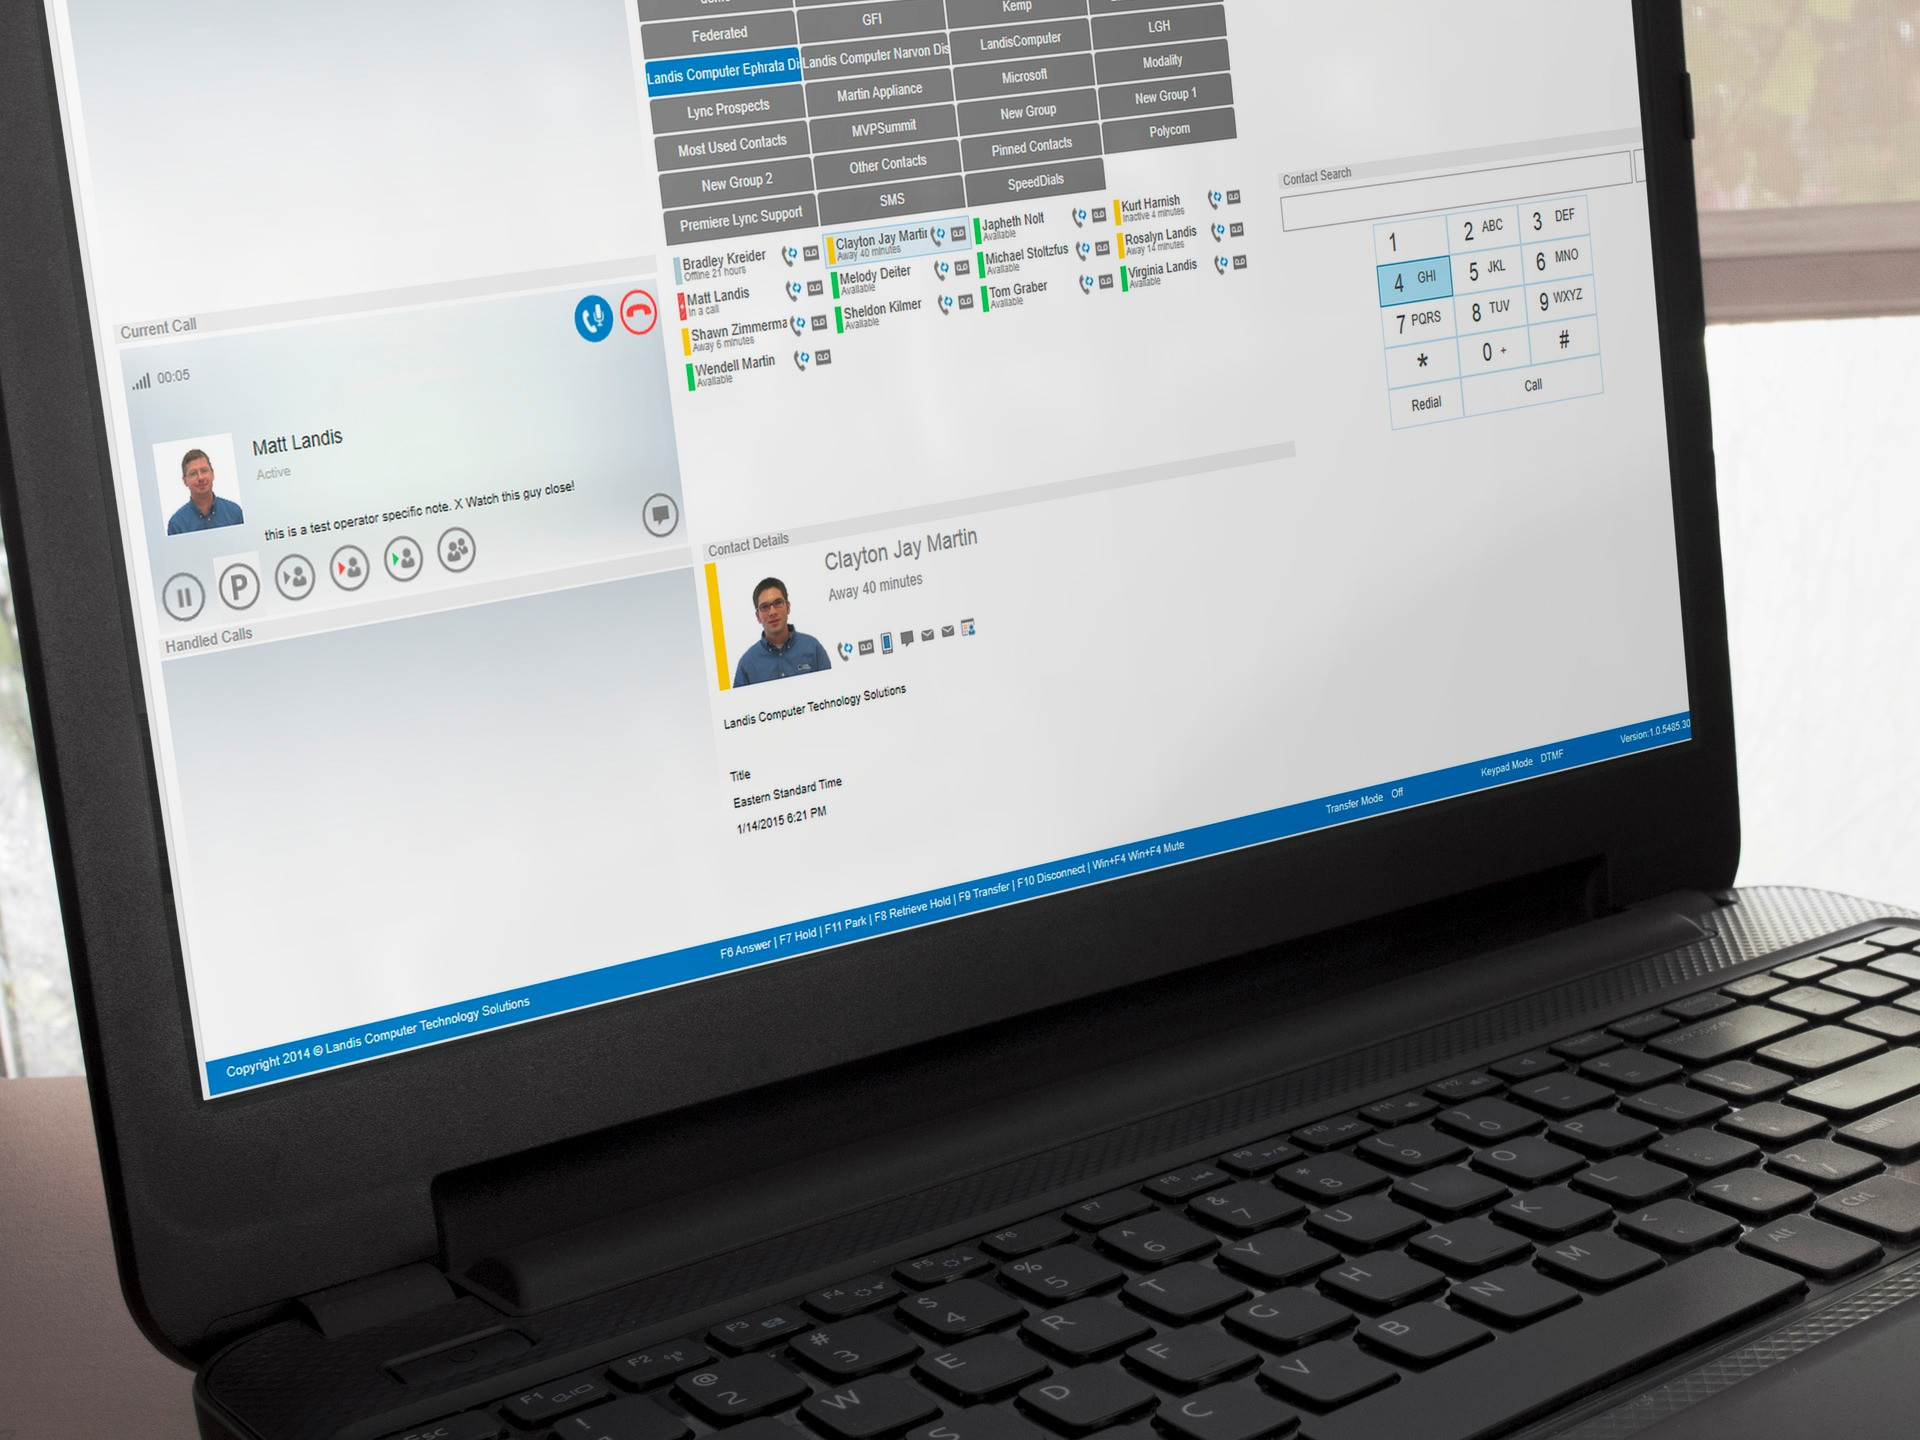 Powerful: Enterprise Features Available in a Fresh, Clean User Interface. Attendant Pro design is clean and fresh but includes advanced features like centralized management using standard Windows Server Group Policy Objects, enables communication enabled business processes in mere minutes and all of Skype for Business functionality is maintained.